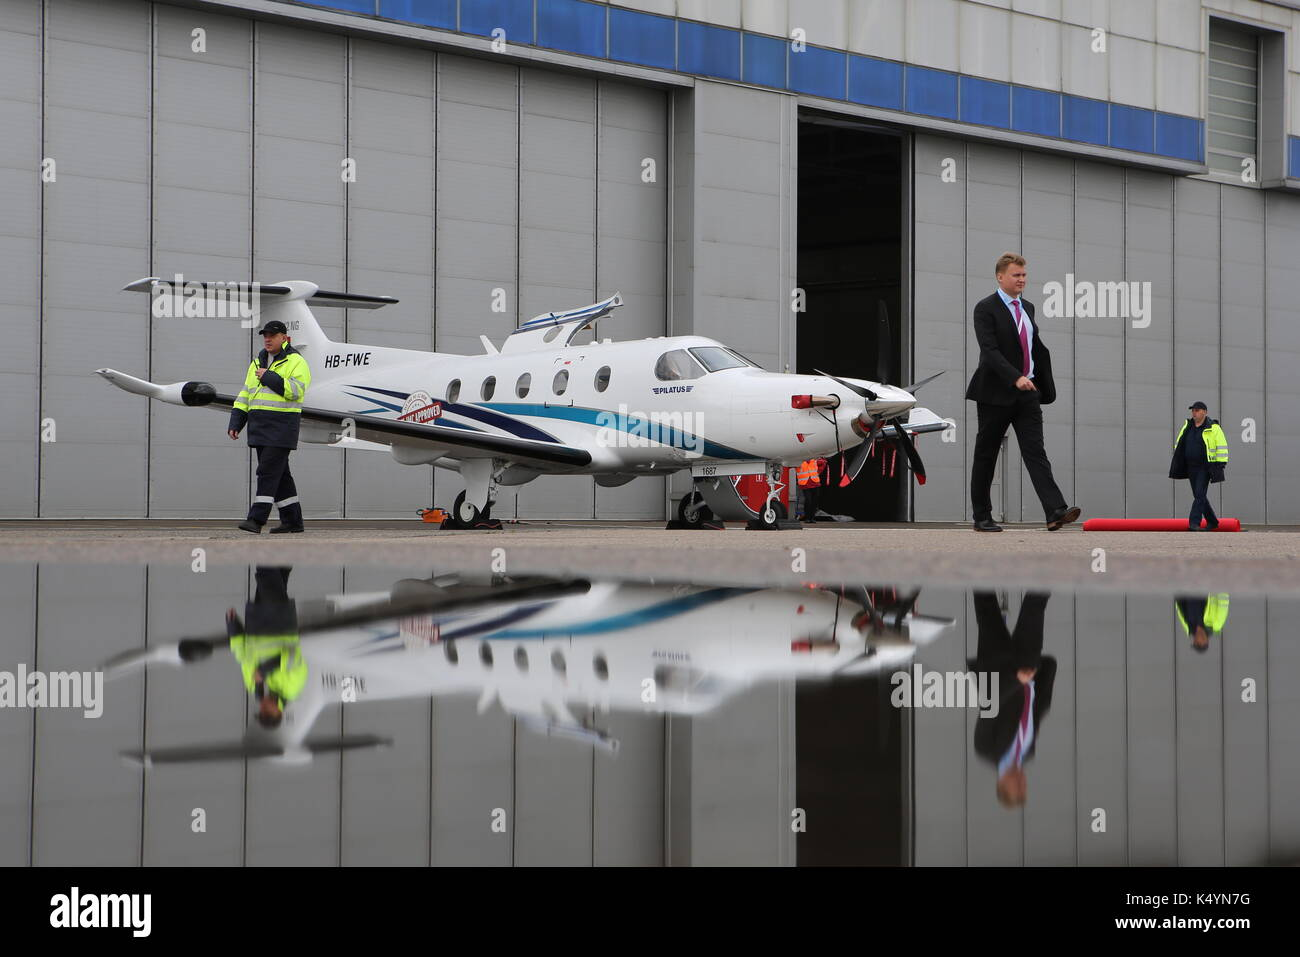 Moscow, Russia. 7th Sep, 2017. A Pilatus PC-12 single-engine turboprop passenger and cargo aircraft manufactured by Pilatus Aircraft on display at the 2017 Jet Expo International Business Aviation Show at the Vnukovo-3 Business Aviation Center. Credit: Marina Lystseva/TASS/Alamy Live News - Stock Image